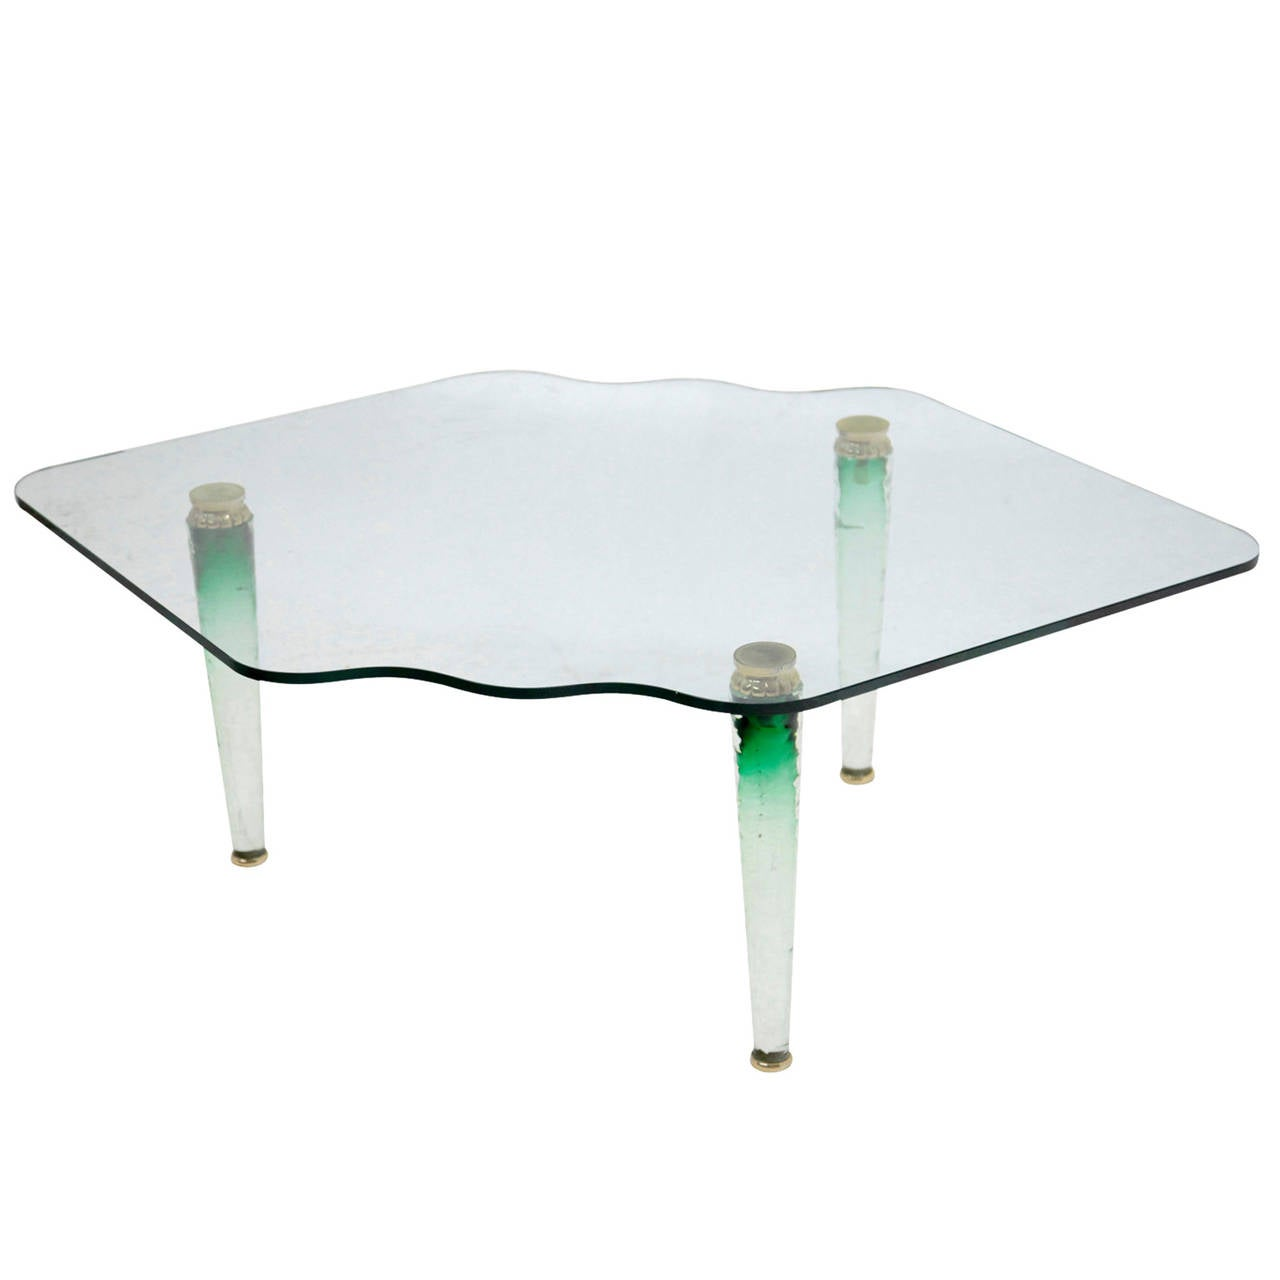 Italian Murano Glass Coffee Table From The 1970s For Sale At 1stdibs